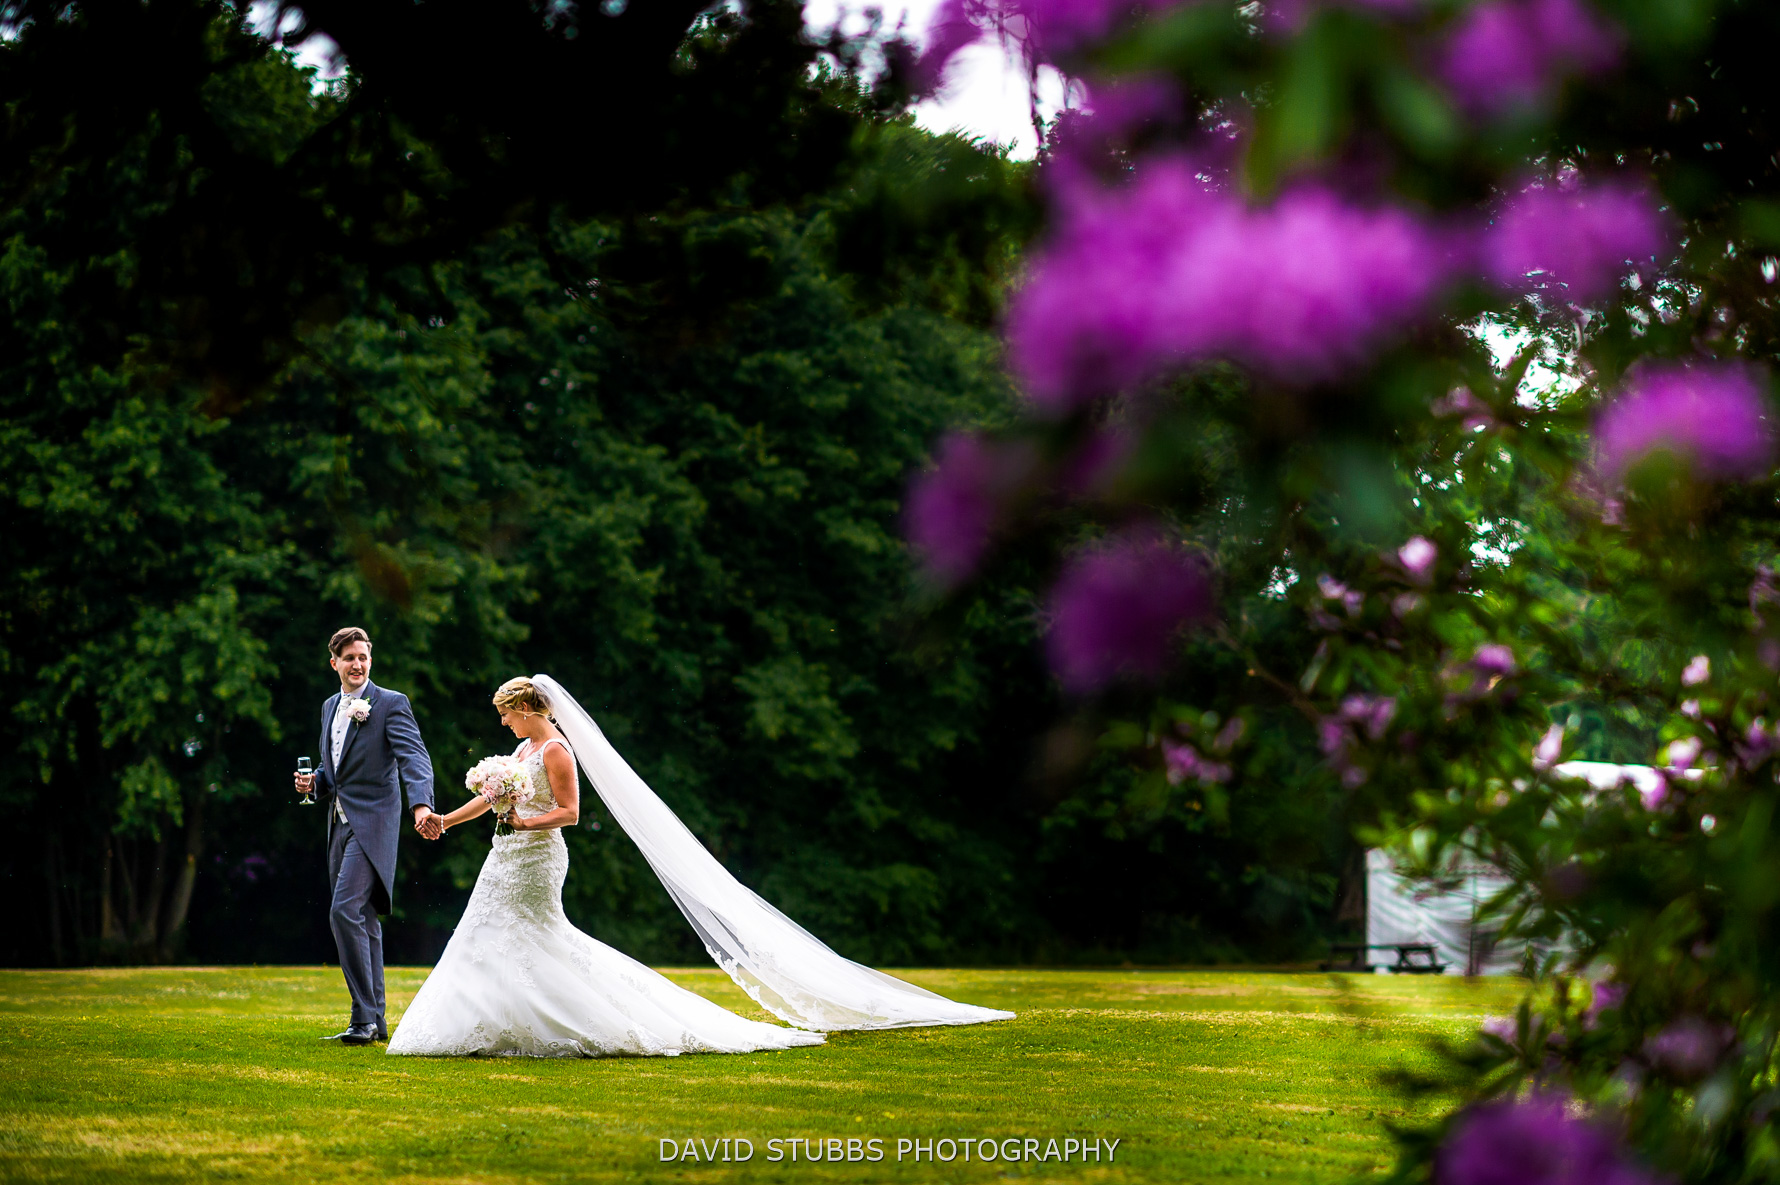 stunning wedding photo at irton in the lakes